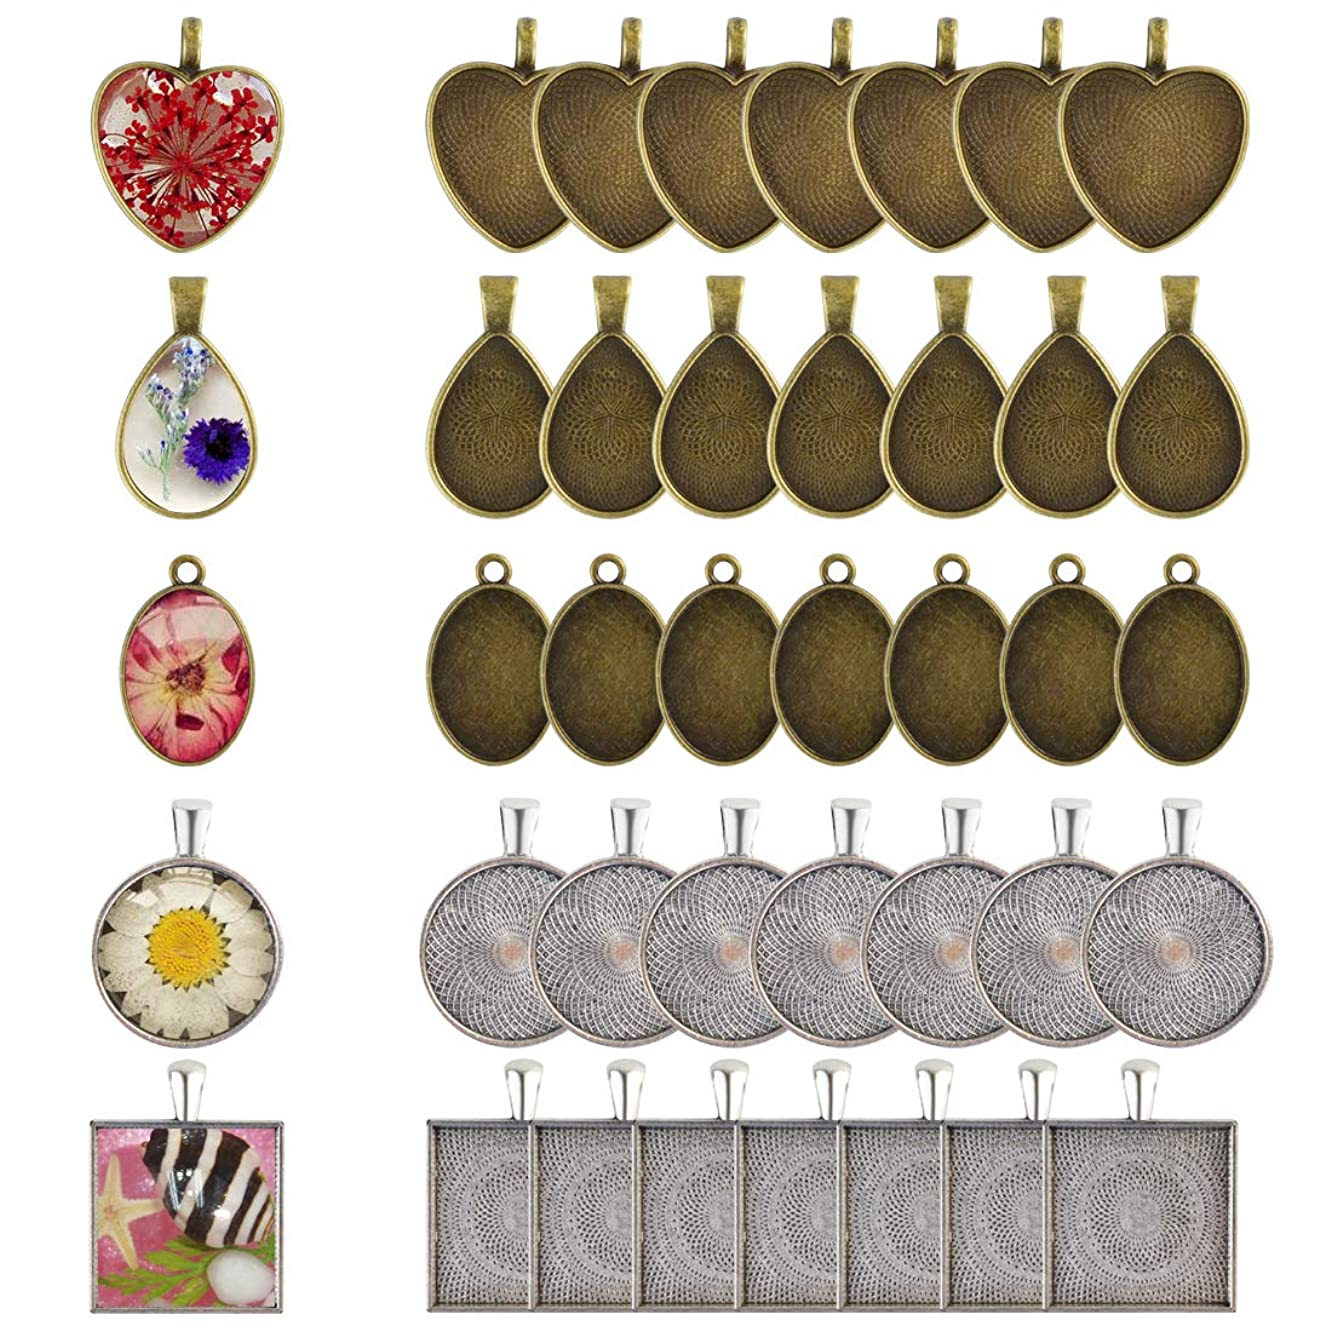 Yolyoo 40-Pieces 5 Styles Pendant Trays - Round & Square & Heart & Teardrop & Oval for Crafting DIY Jewelry Gift Making (40pcs)